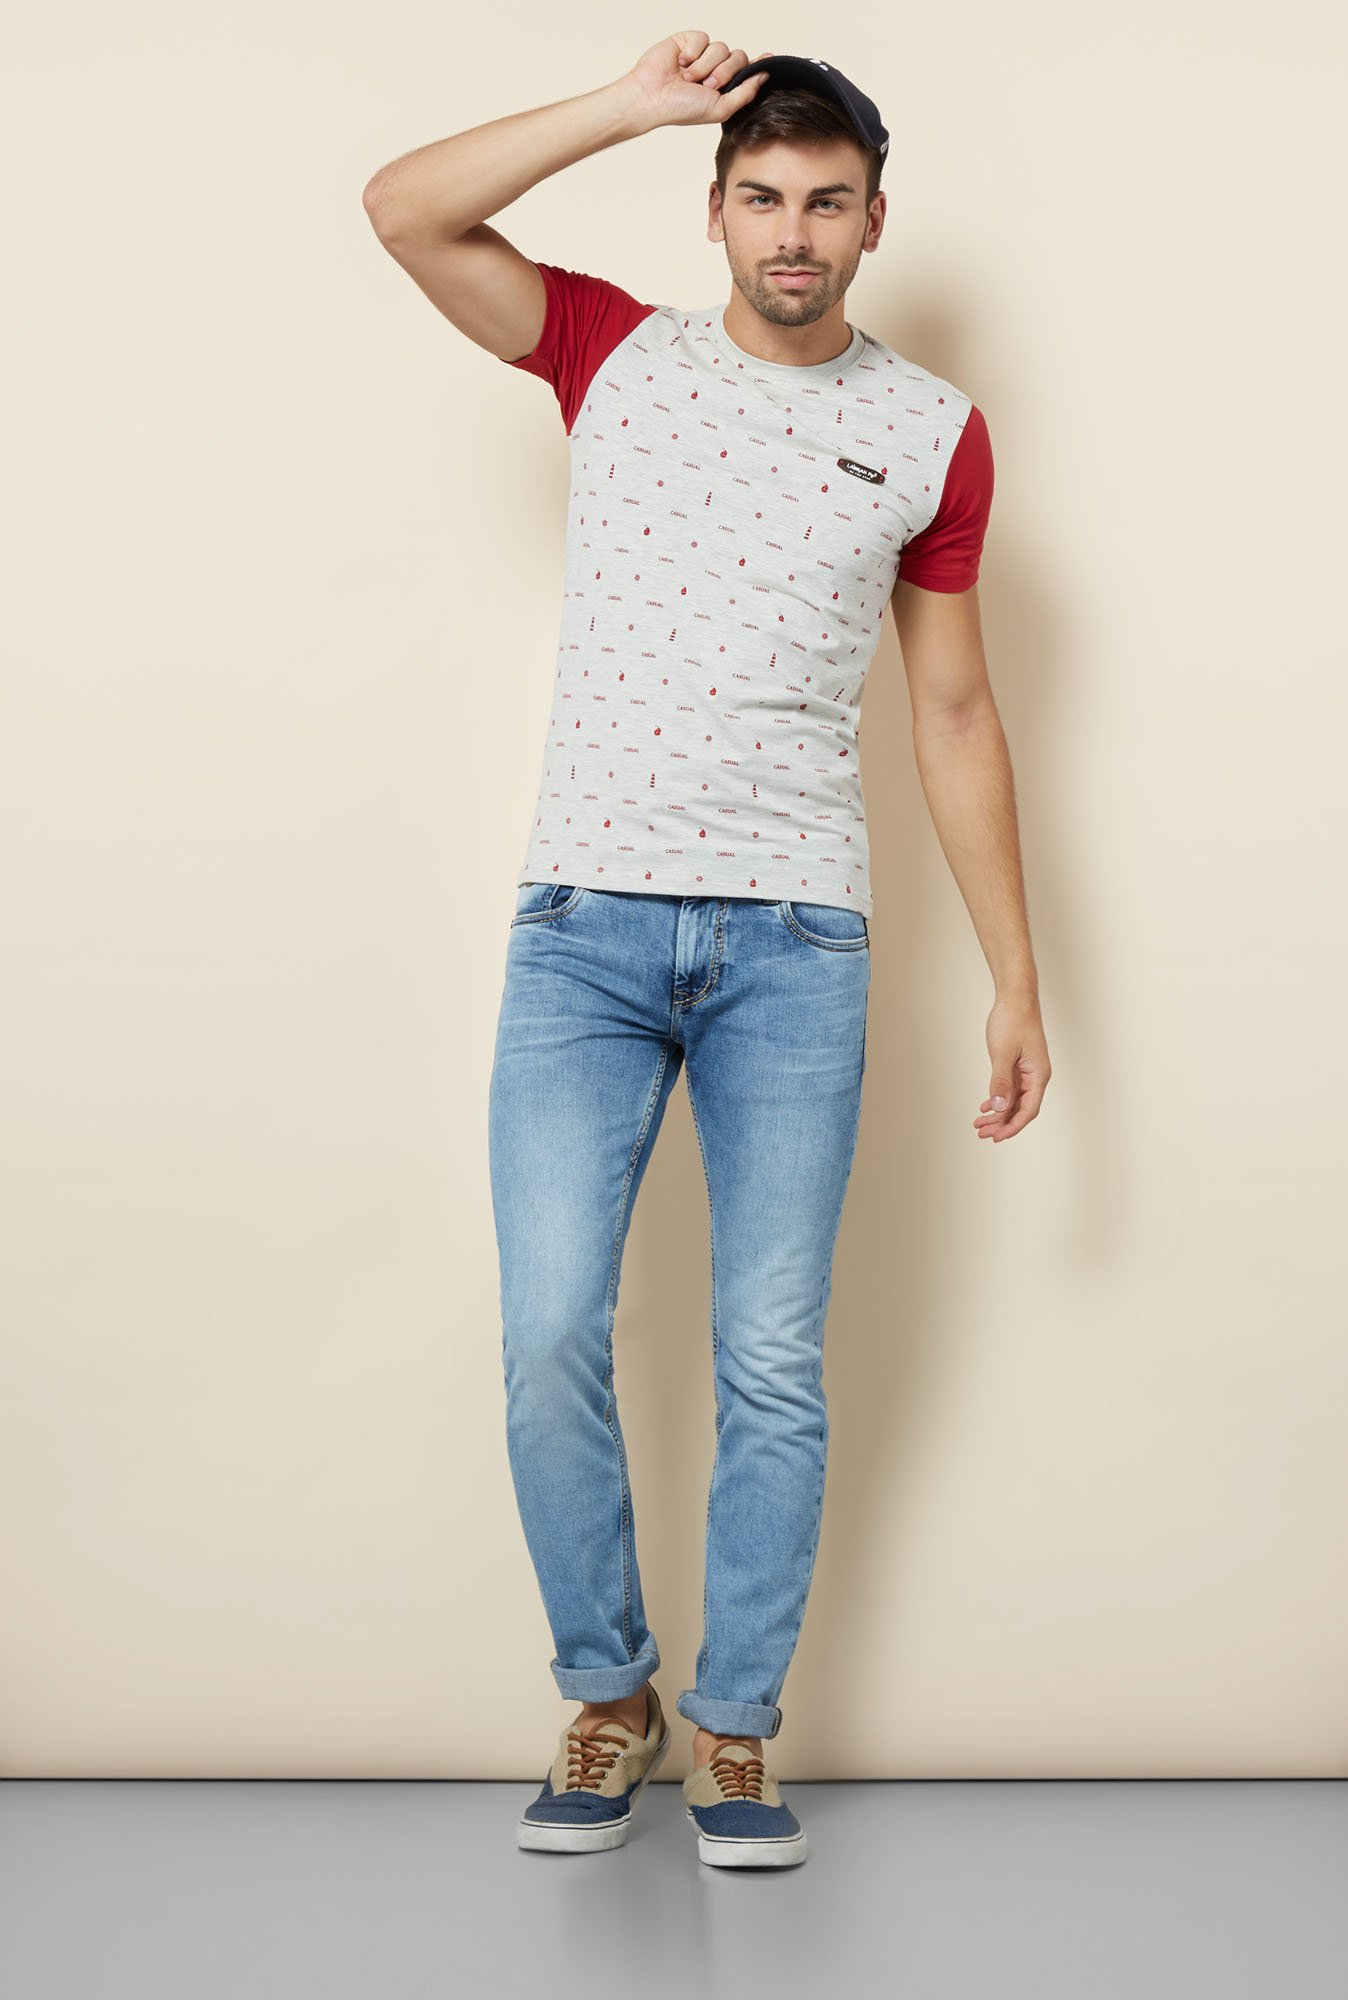 Lawman Grey Slim Fit T shirt